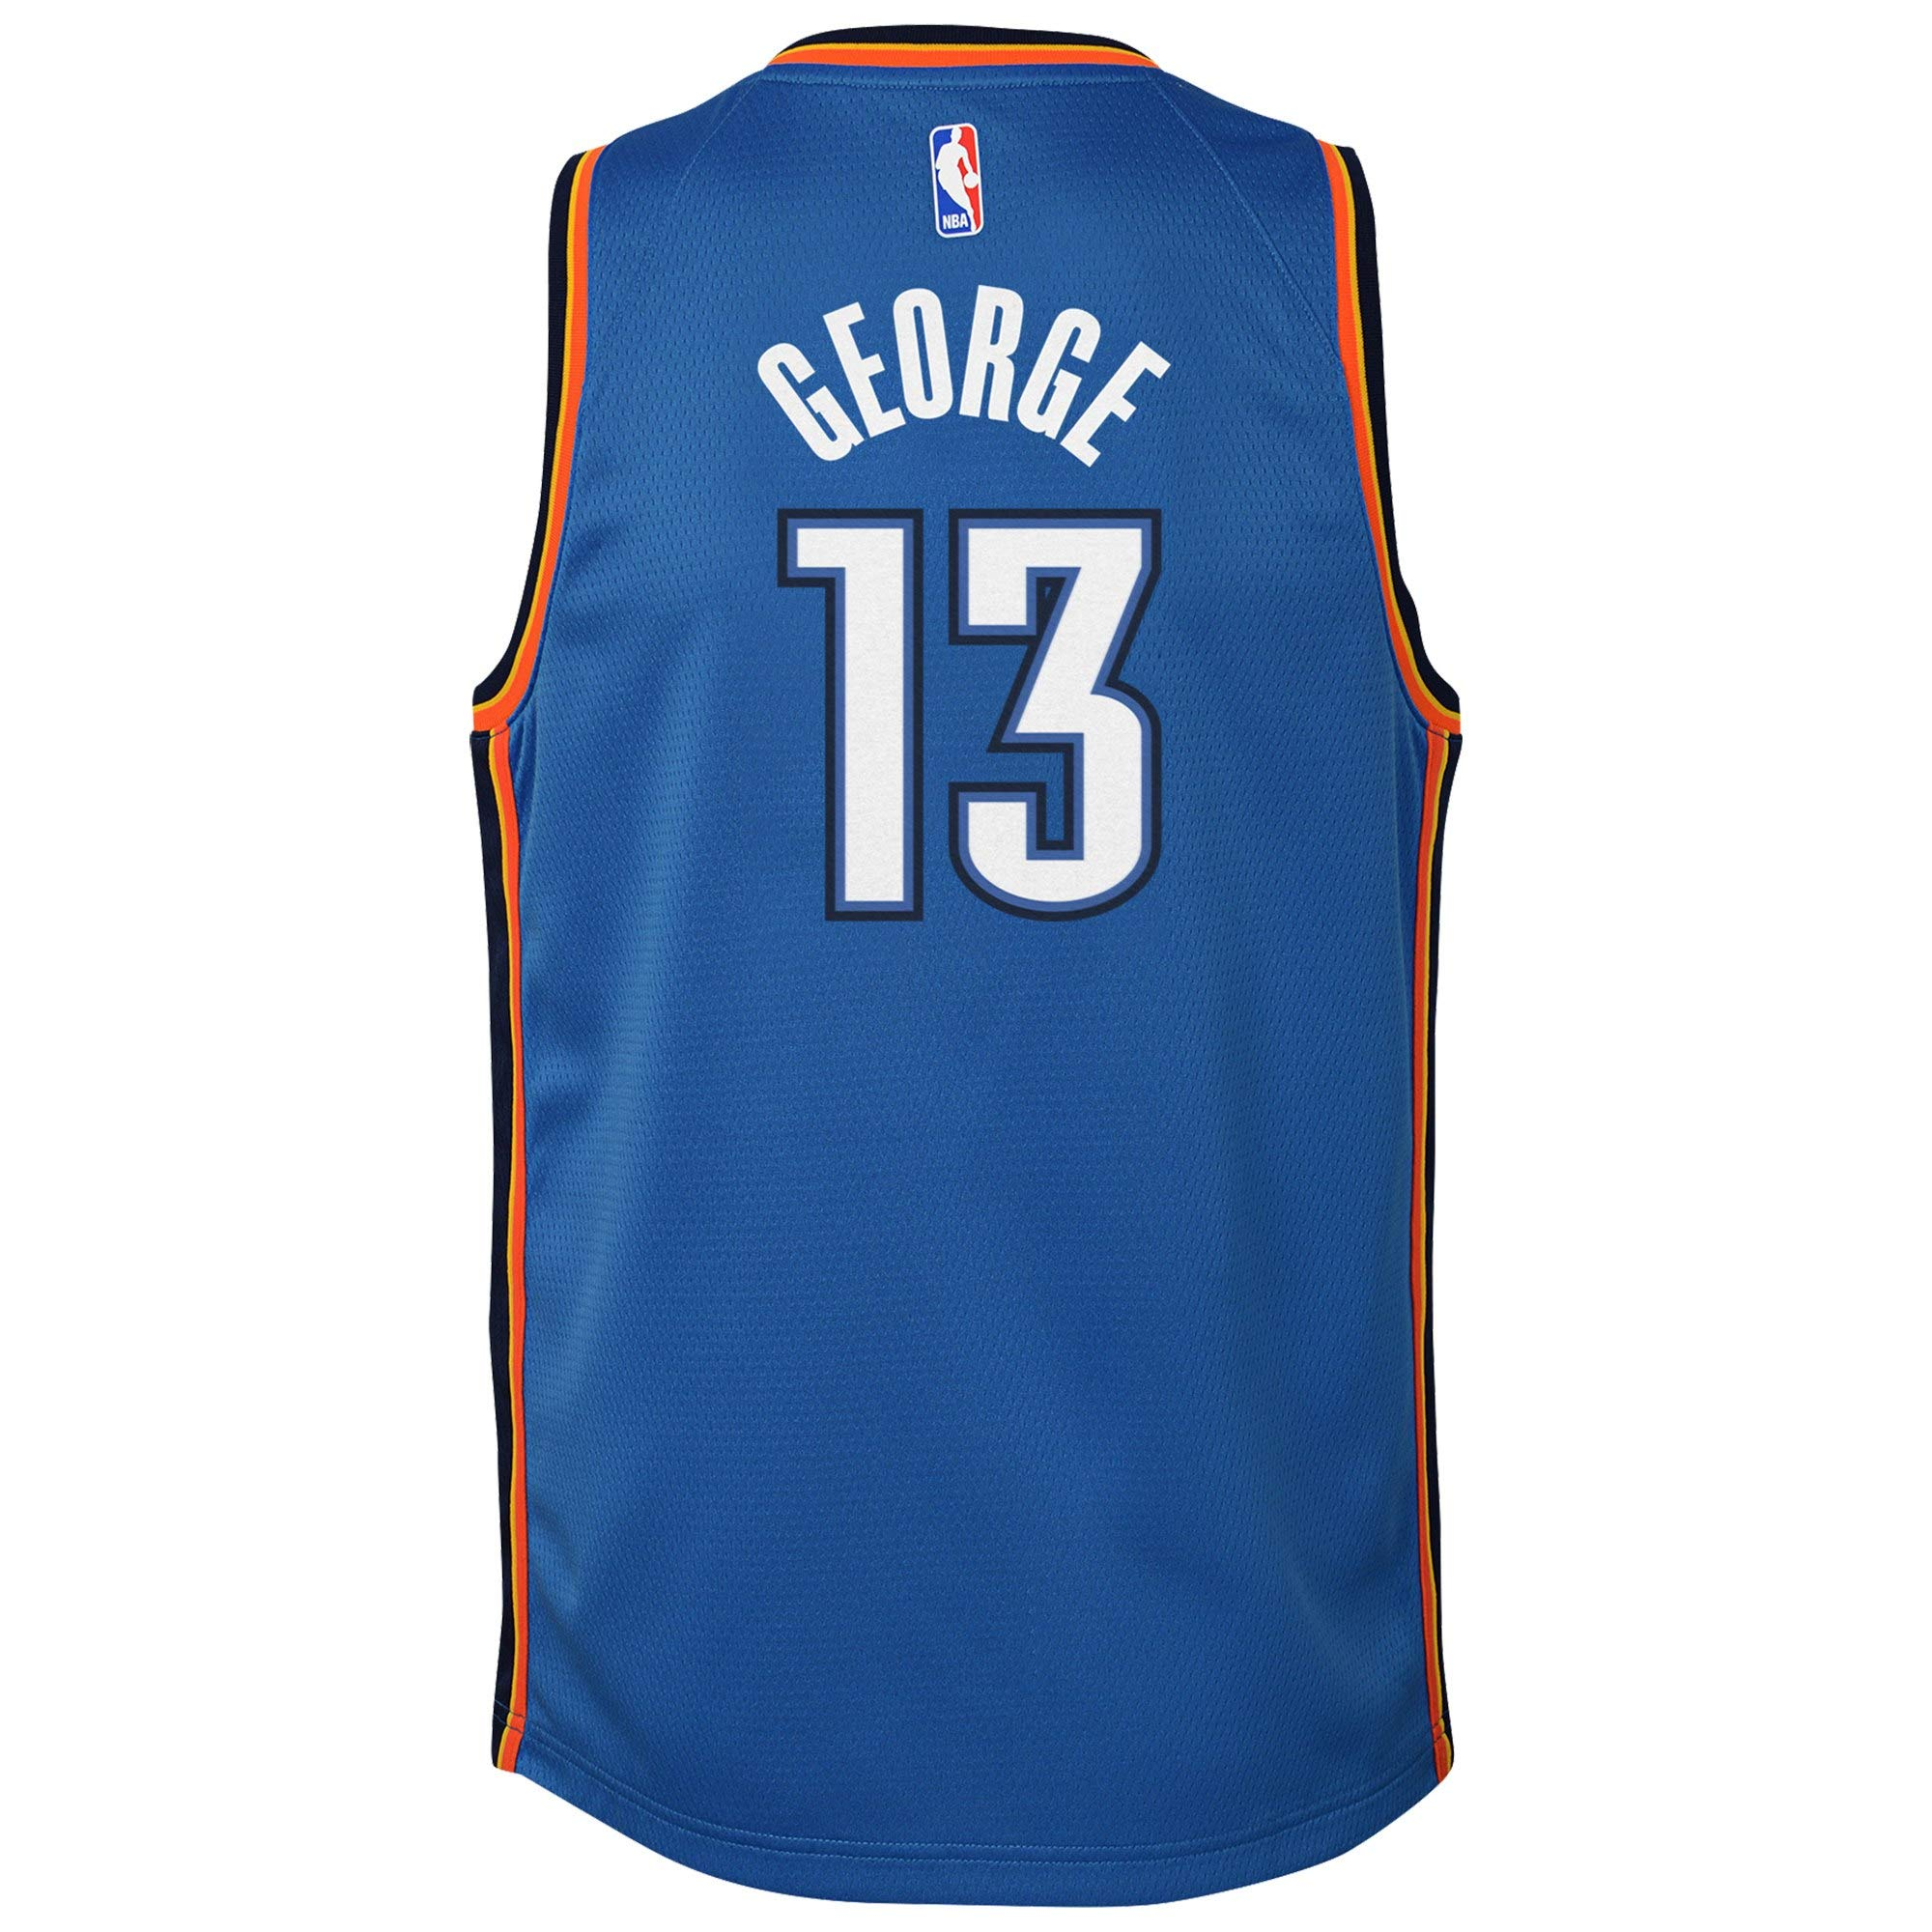 Nike Youth Paul George Oklahoma City Thunder Icon Edition Jersey - Blue (Gold, Youth Large (14-16)) by Nike (Image #3)